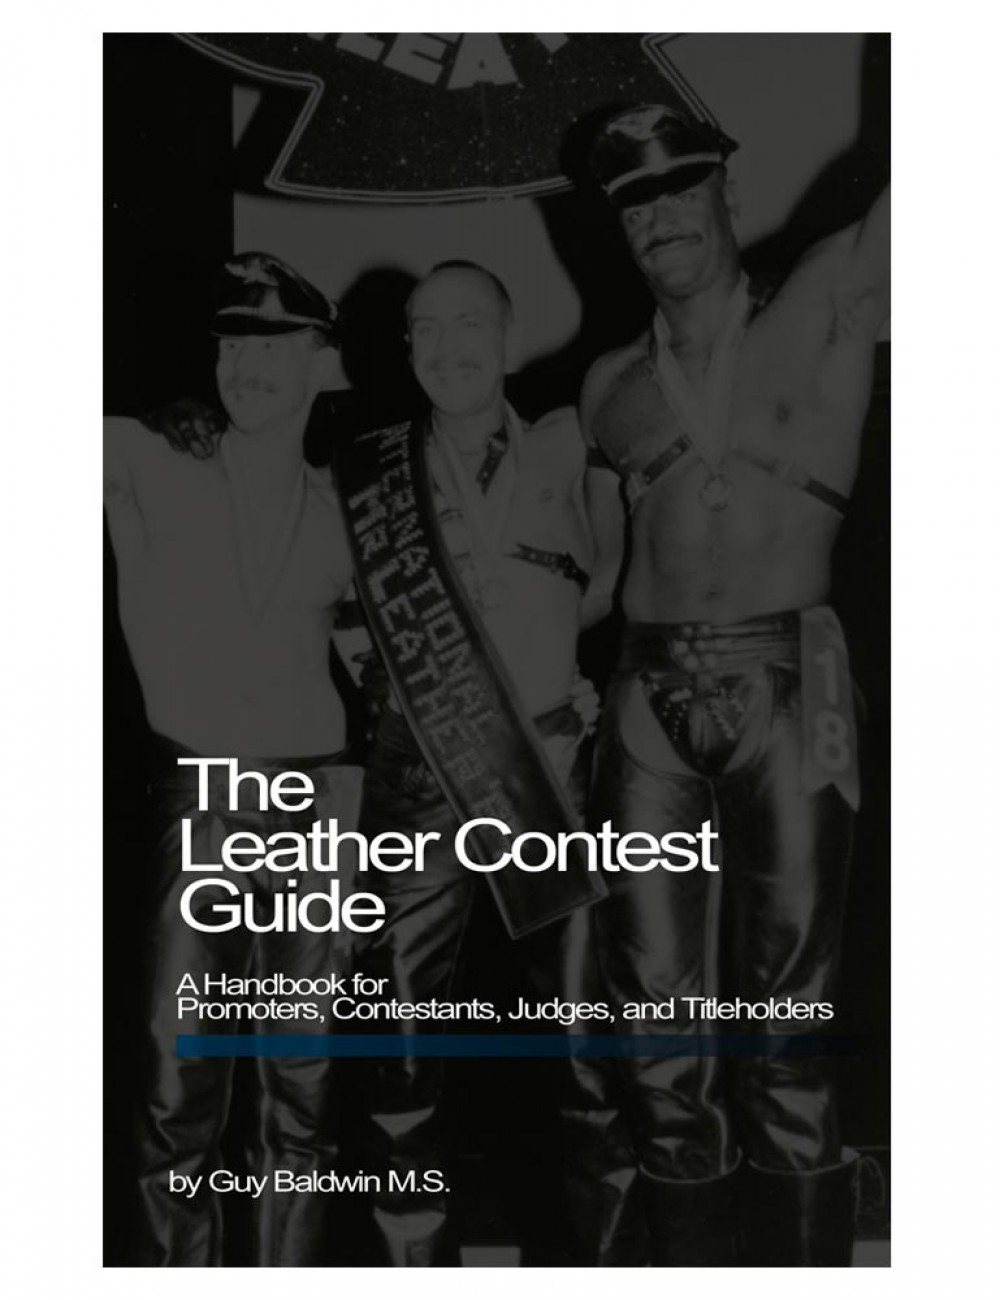 Leather Contest Guide (Guy Baldwin)